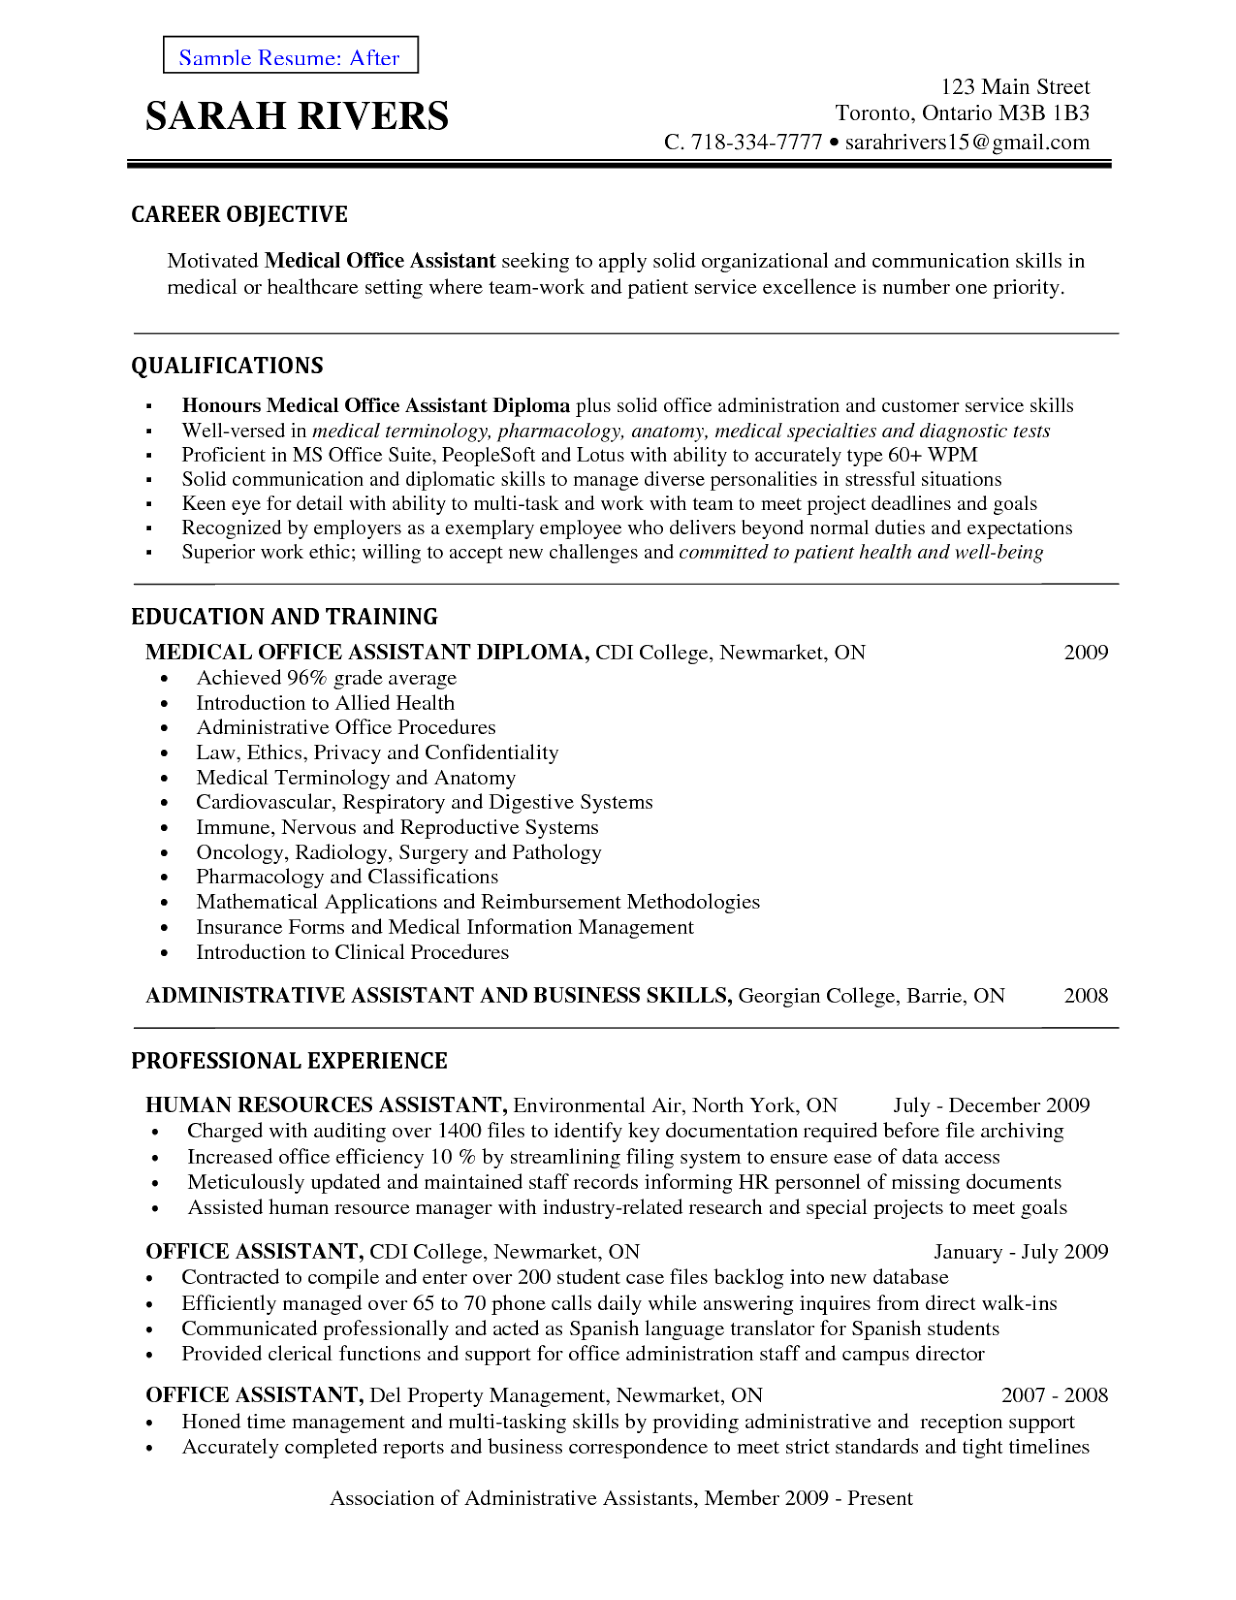 Entry Level Medical Assistant Resume Examples Cover Letter Medical Assistant  Resume Crossword Medical Assistant Resume Example  C Level Executive Assistant Resume